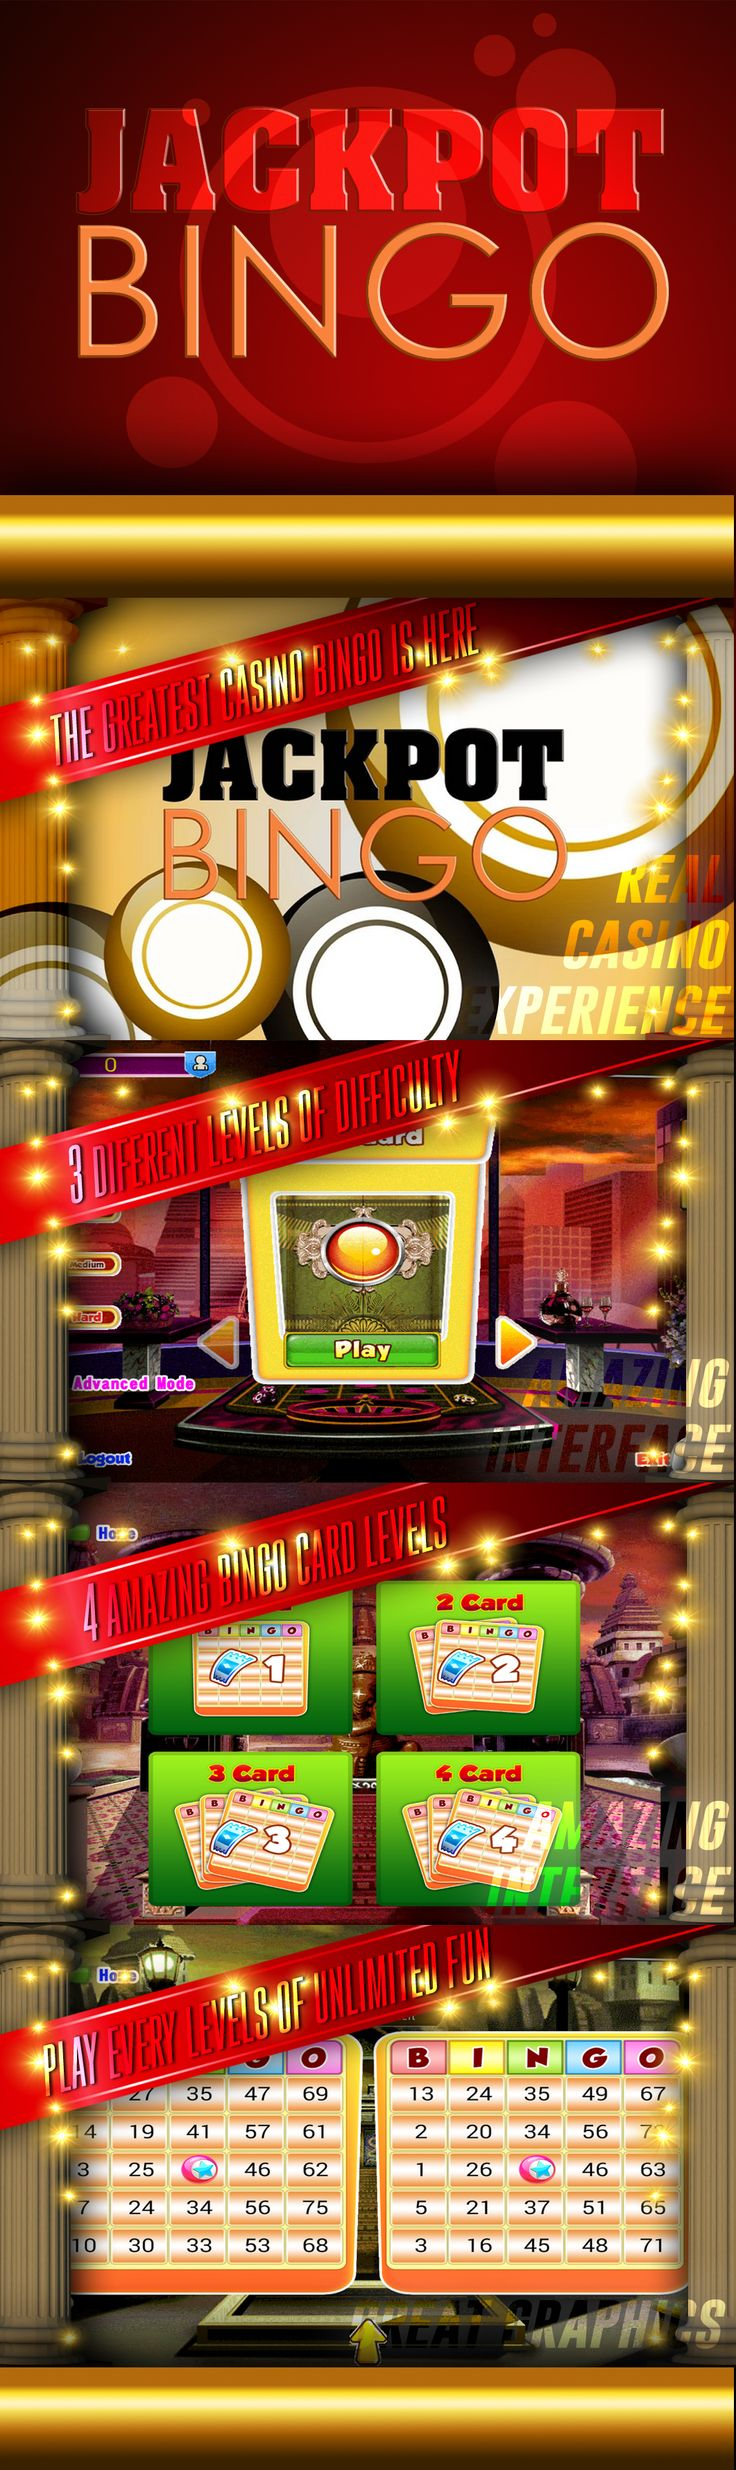 Real time killing machine Jackpot Bingo free.  Bingo is a game of chance played with randomly drawn numbers which players match against numbers that have been pre printed on 5x5 matrices.